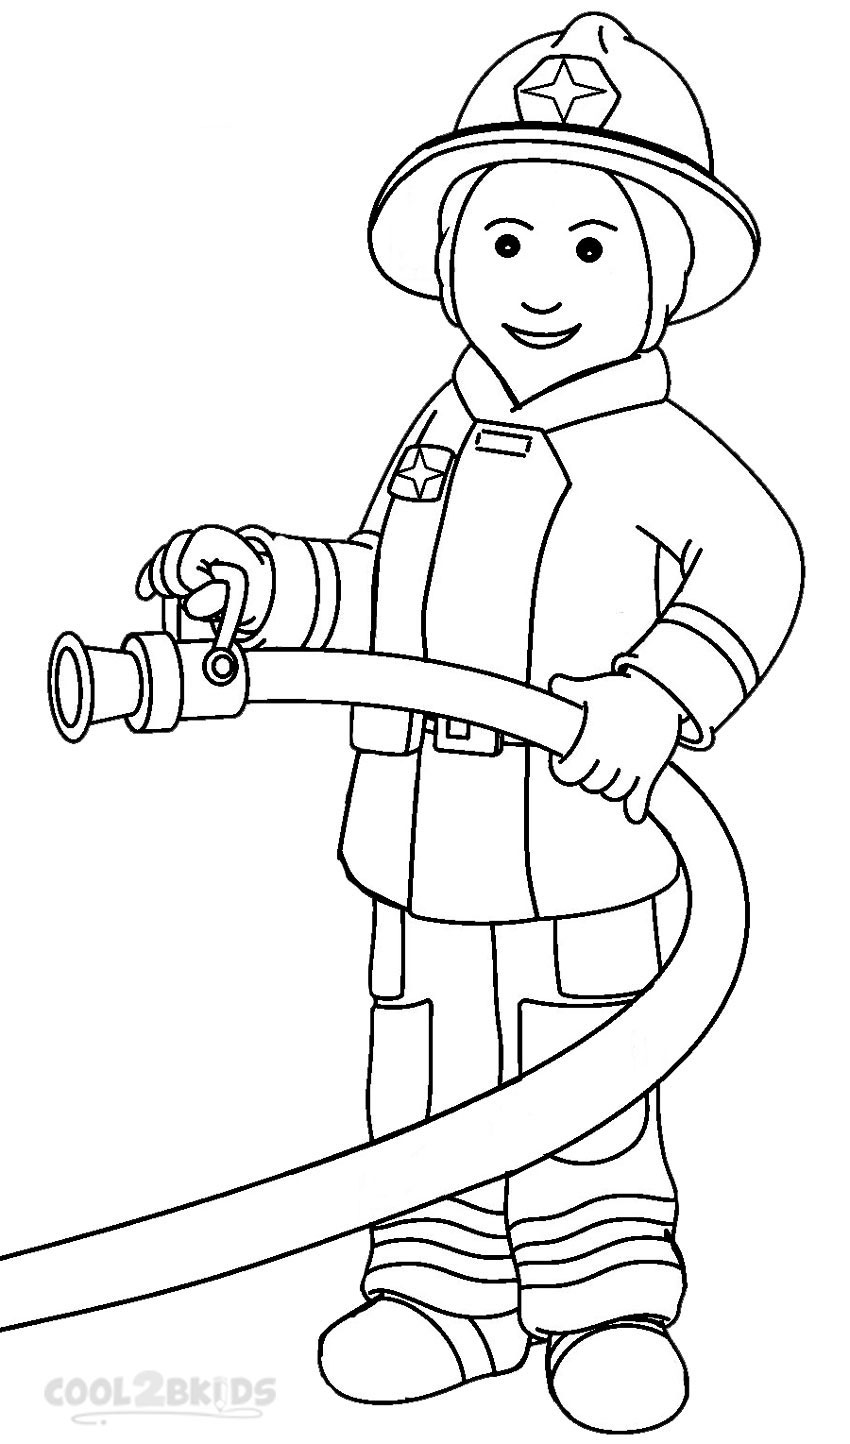 Firefighter black and white. Fireman clipart draw